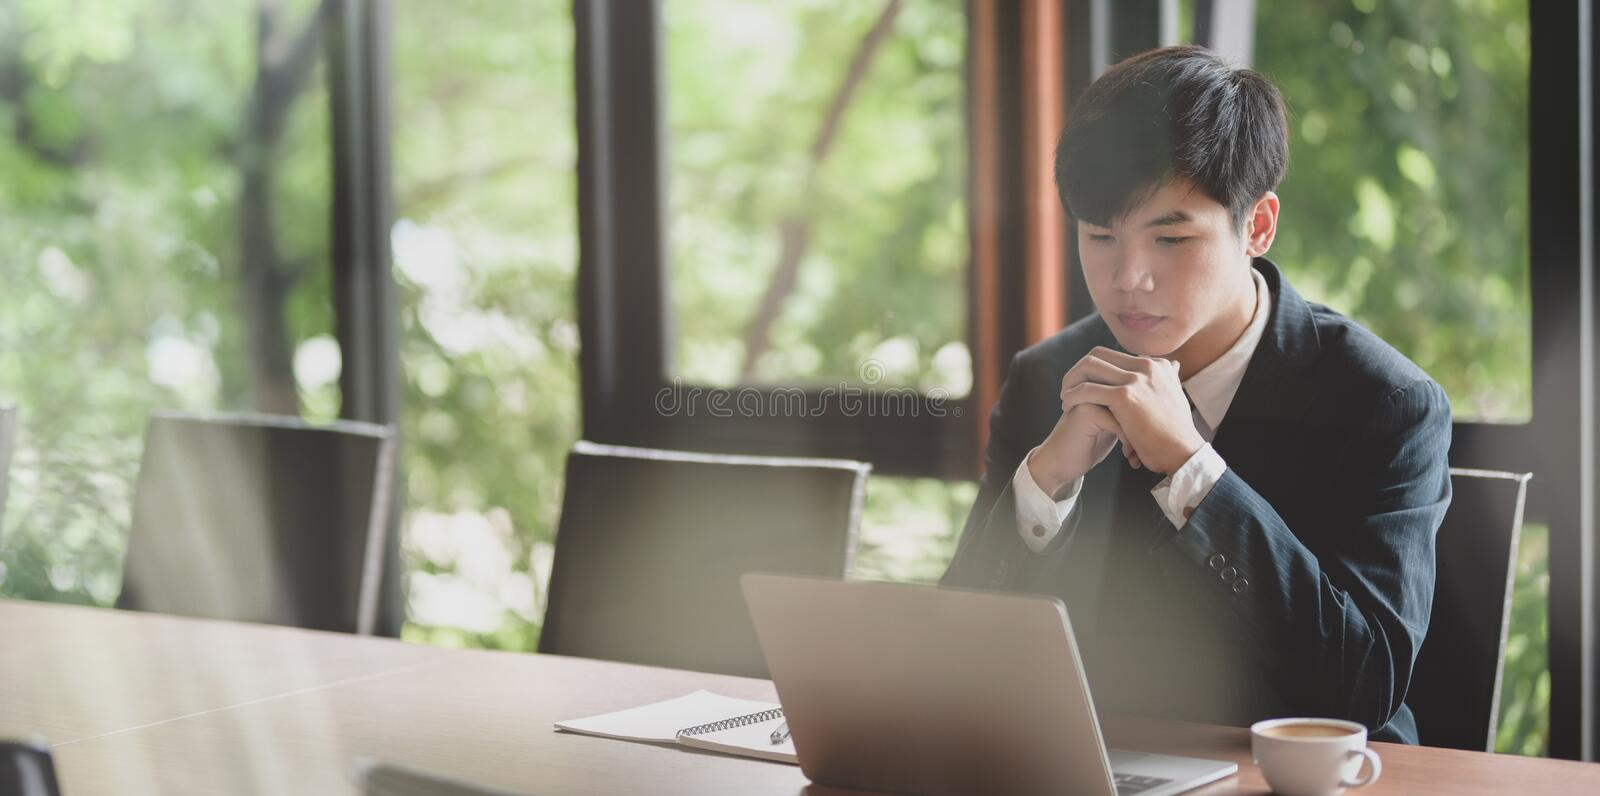 Young businessman looking stressful while working on project royalty free stock images